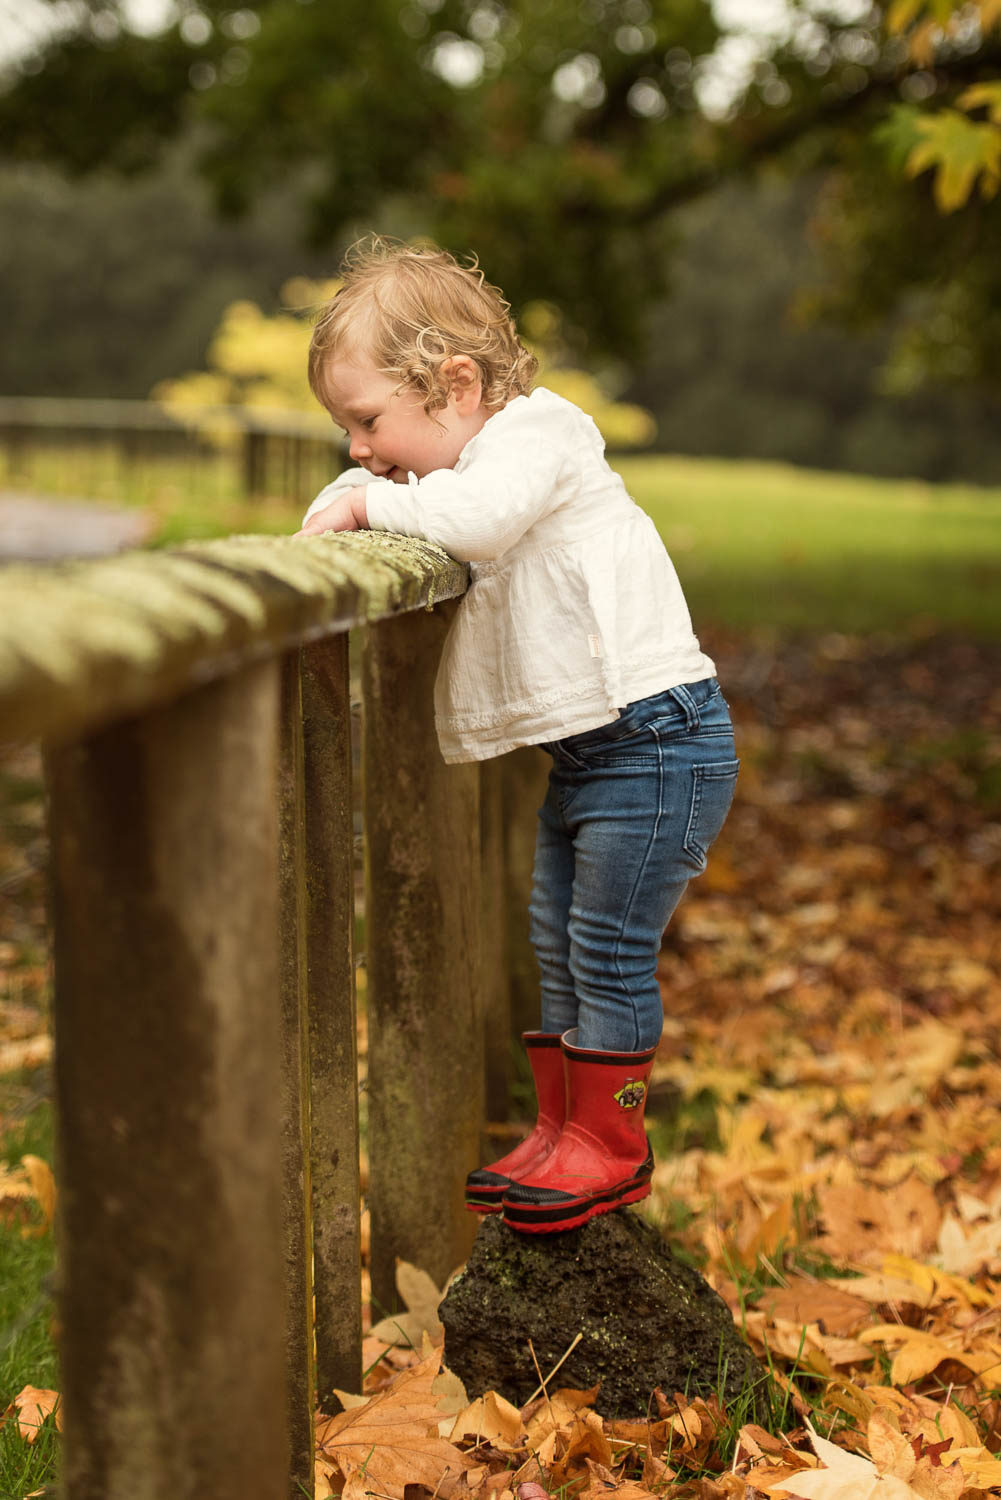 child climbing fence photography by siobhan kelly photography